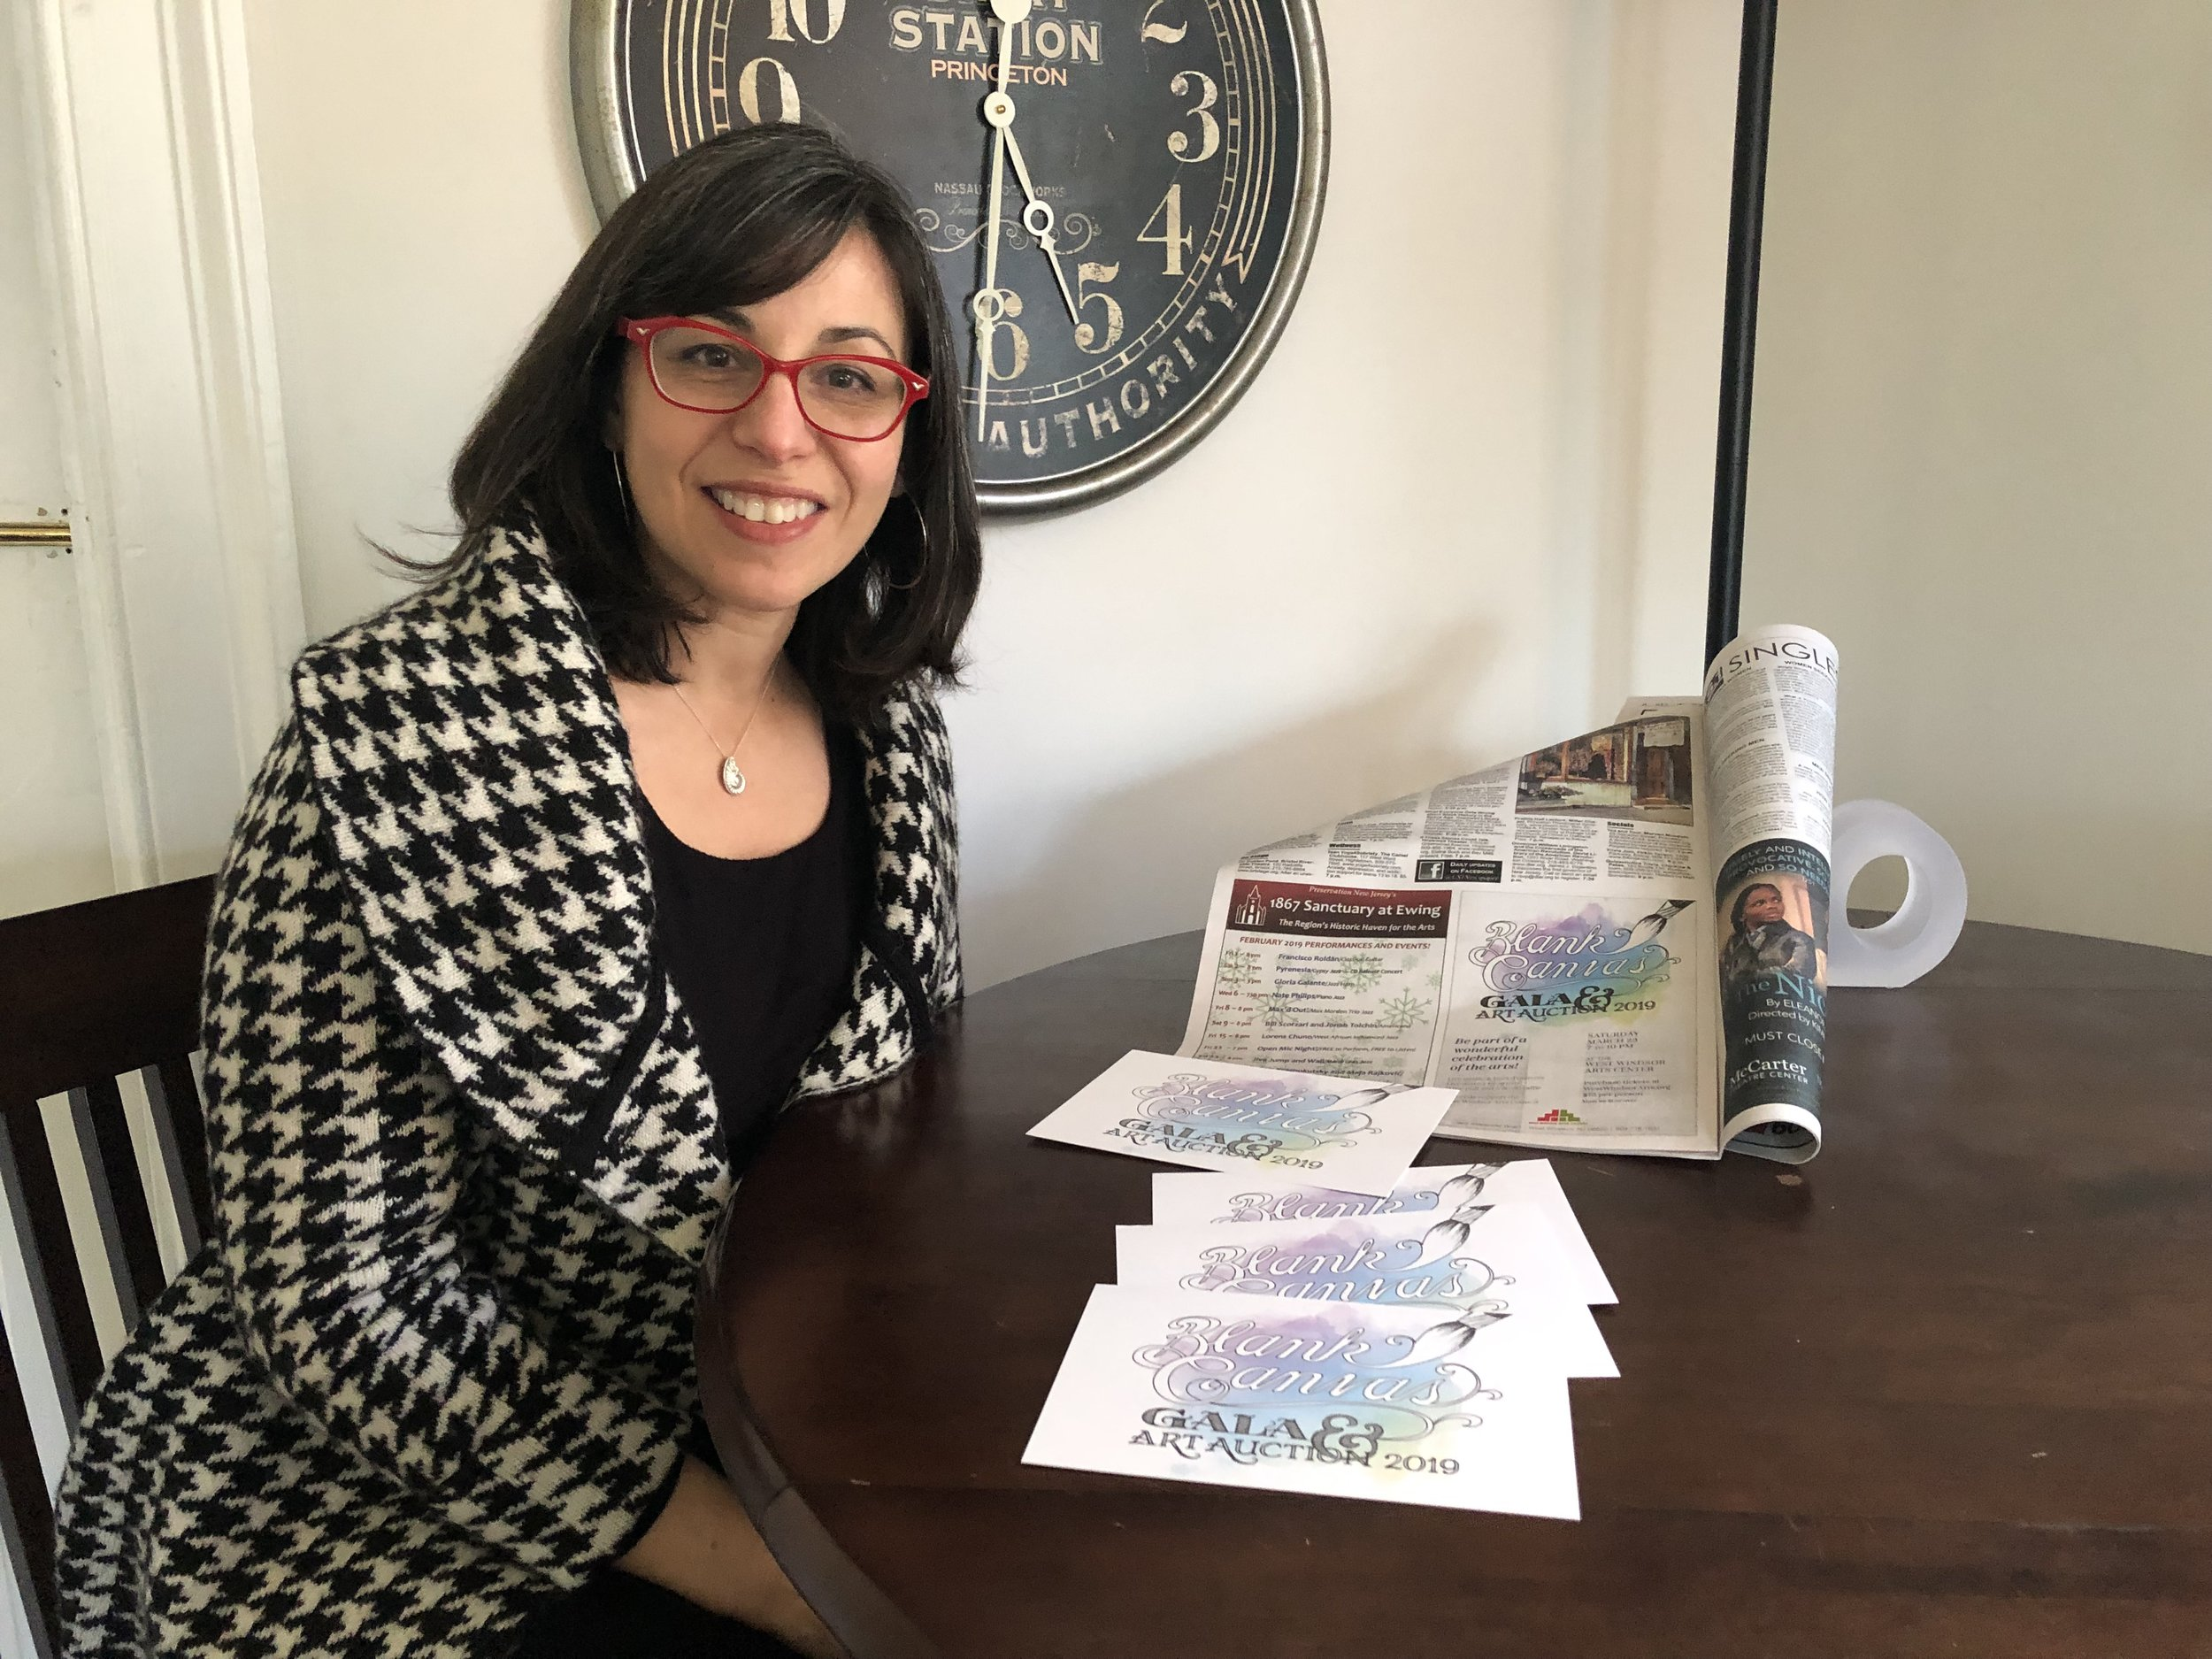 West Windsor Arts Council's Aylin Green stops by the Ananta office to check out the new invitations and ads for her organization's major fundraiser of the year.